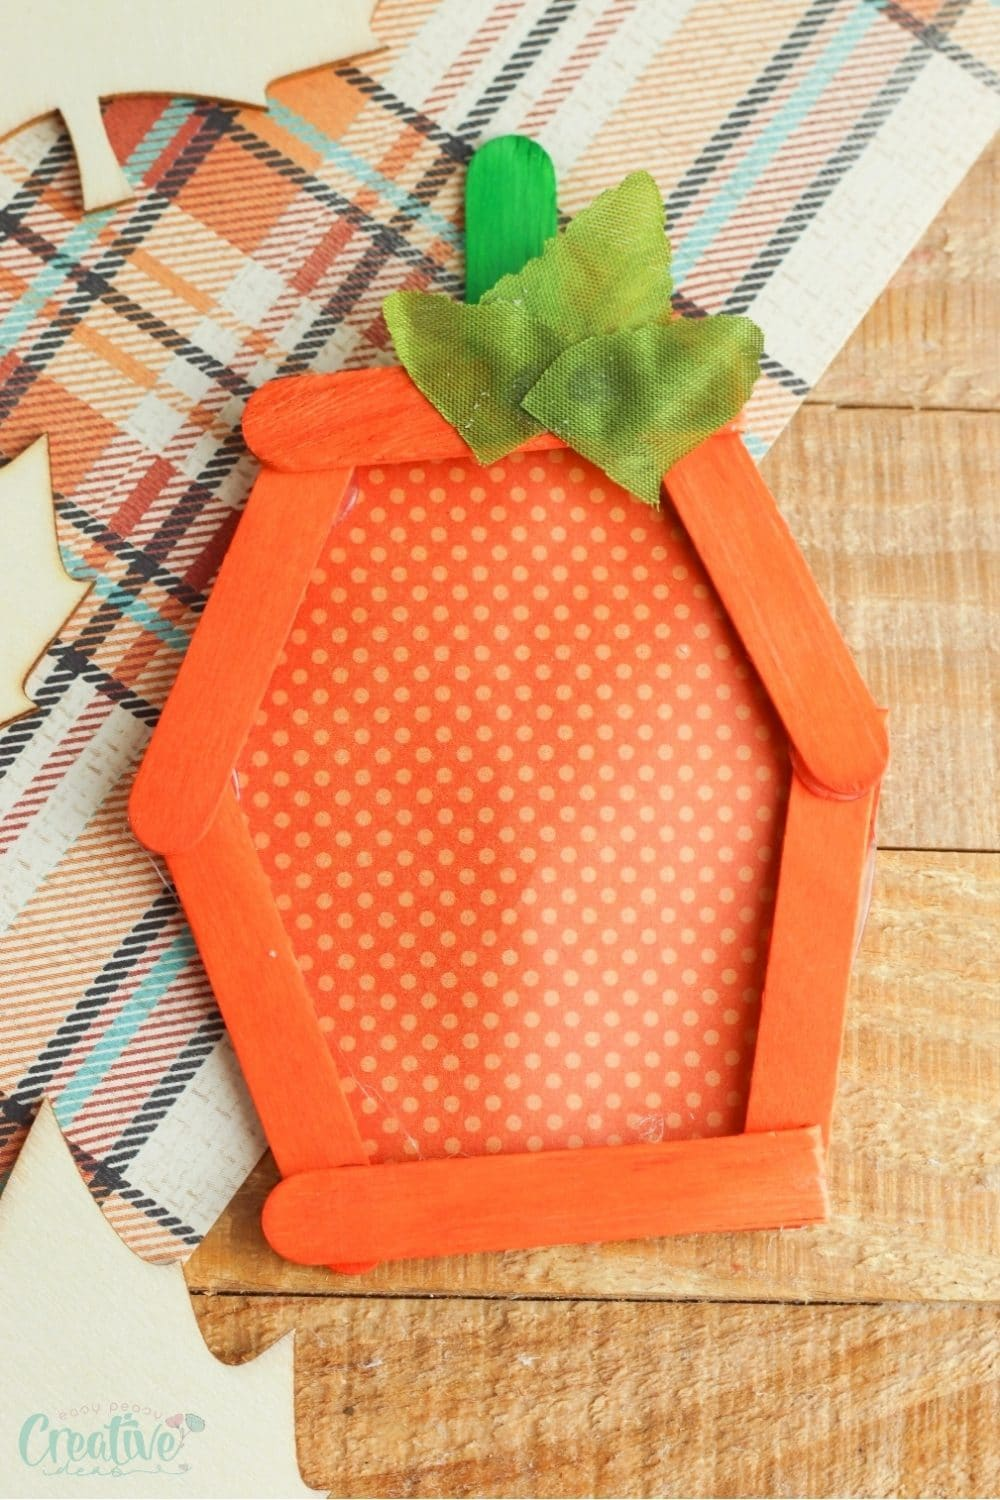 Image of an easy pumpkin craft created with popsicle sticks and paper